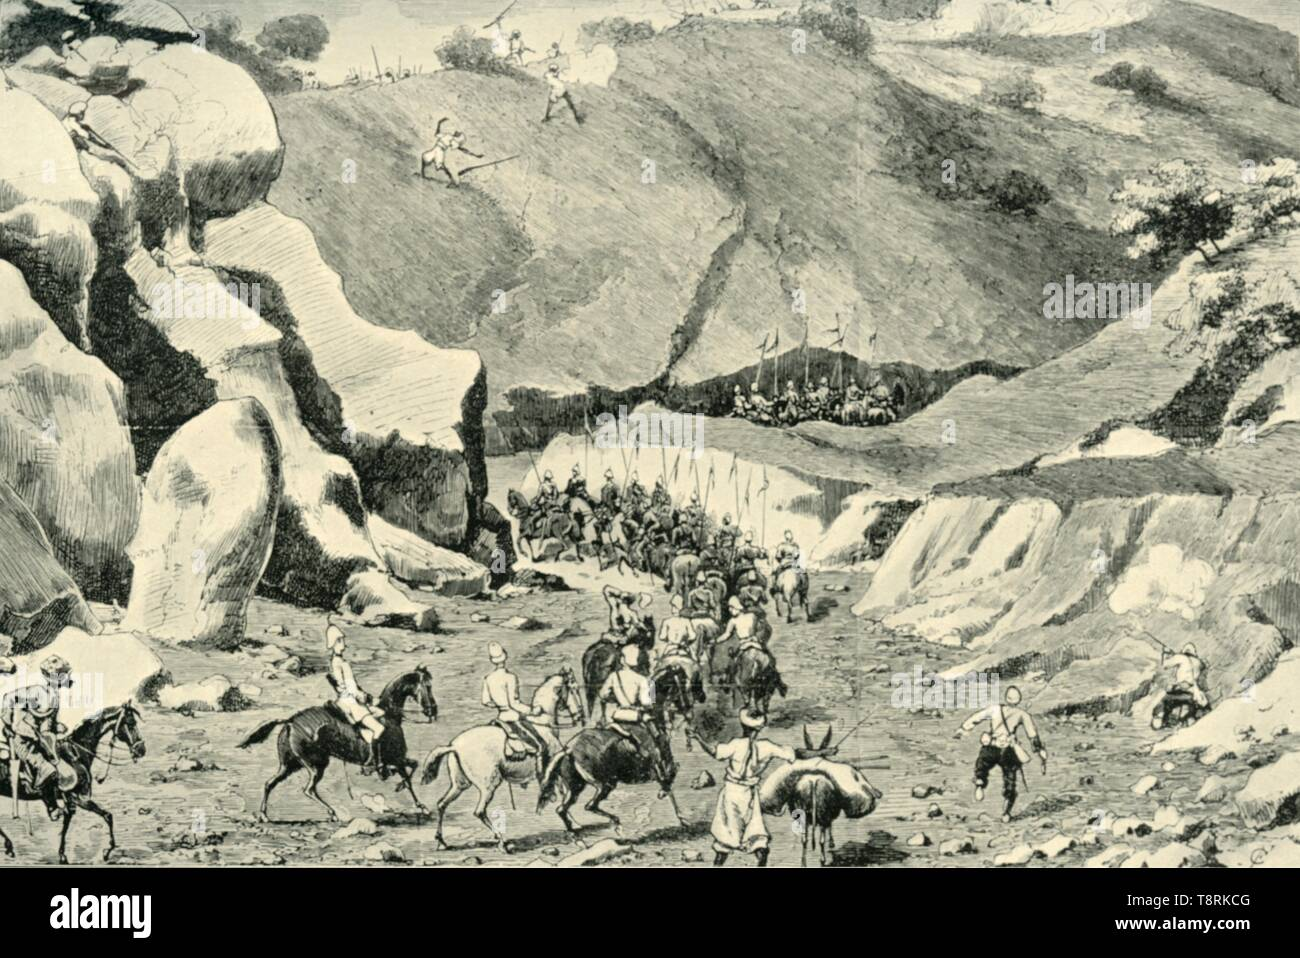 'General Roberts...Attacked by ghilzais in the Shutargardan Pass, September 27, 1879', (1901).  Creator: Unknown. - Stock Image